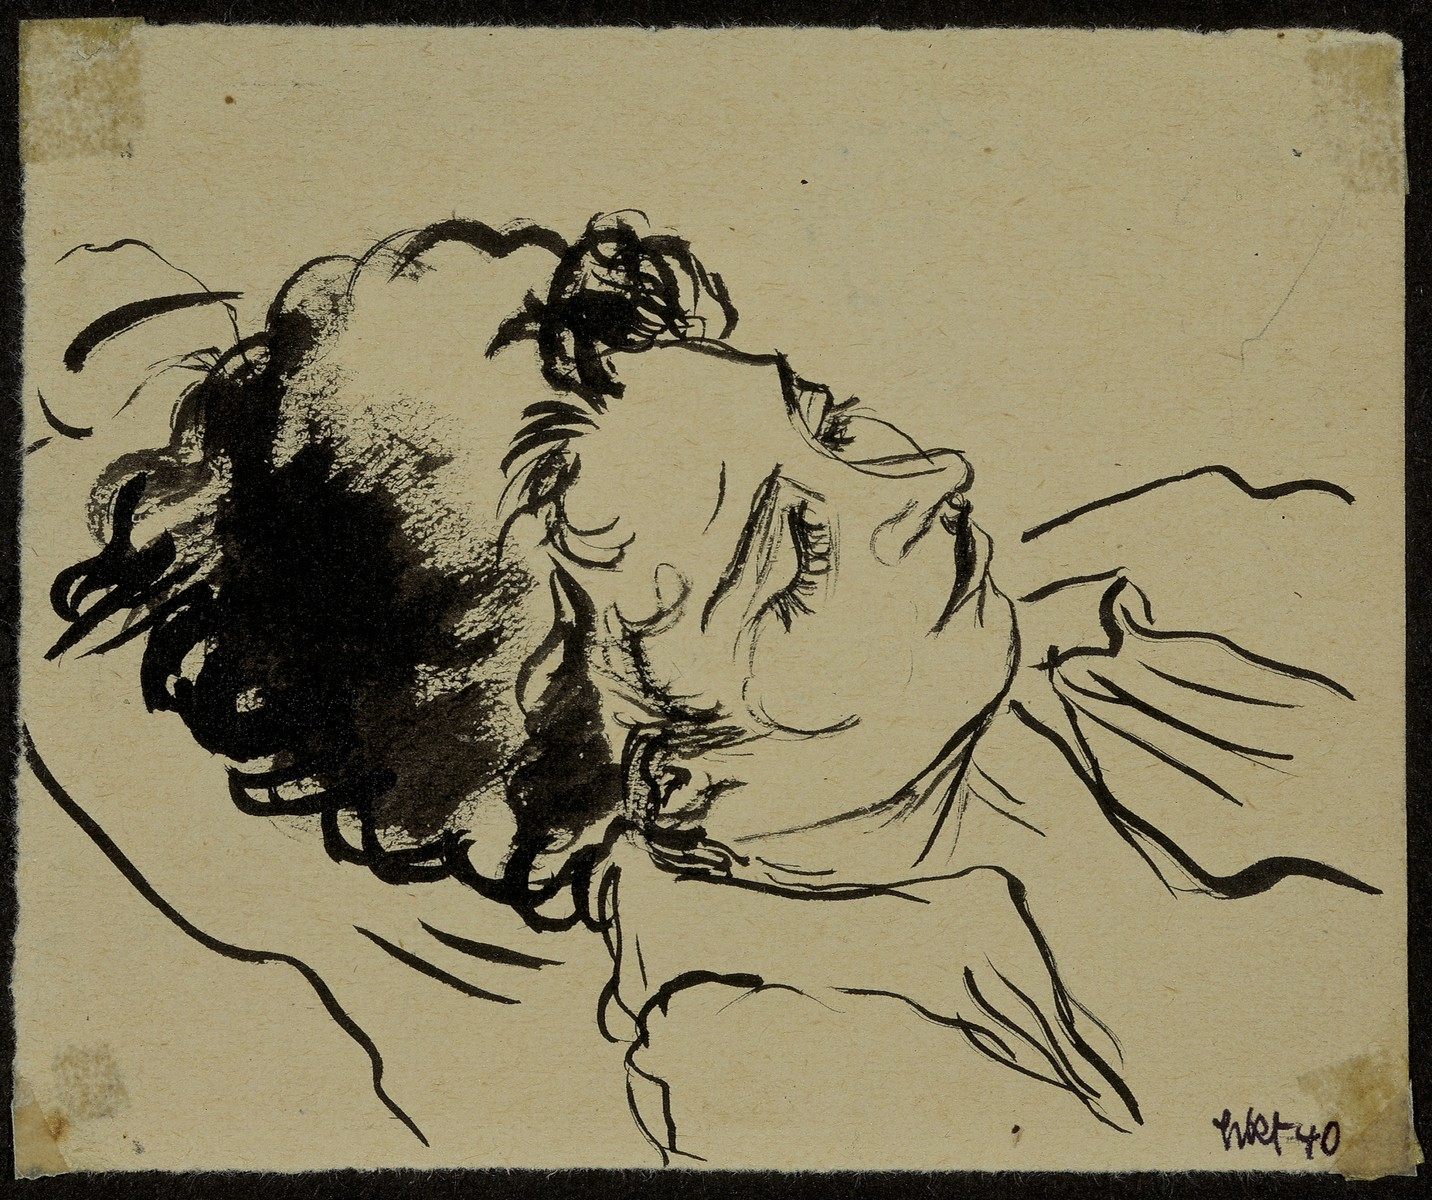 """Sleeping Inmate"" by Lili Andrieux.  Sketch of head and shoulders of woman asleep."